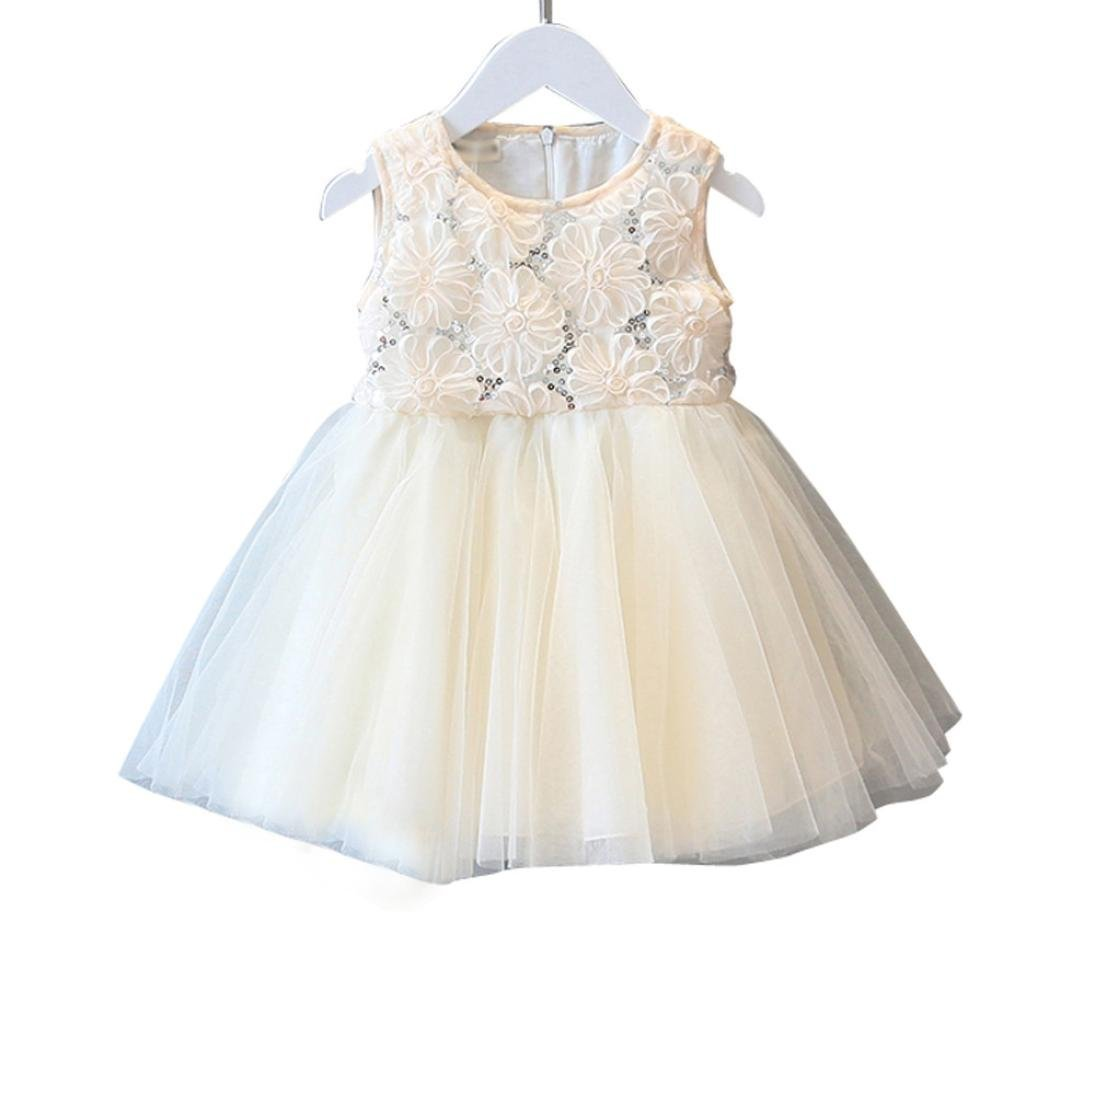 Gotd Girls Rose Sequined Lace Tutu Dress Princess Sleeveless Voile Dress